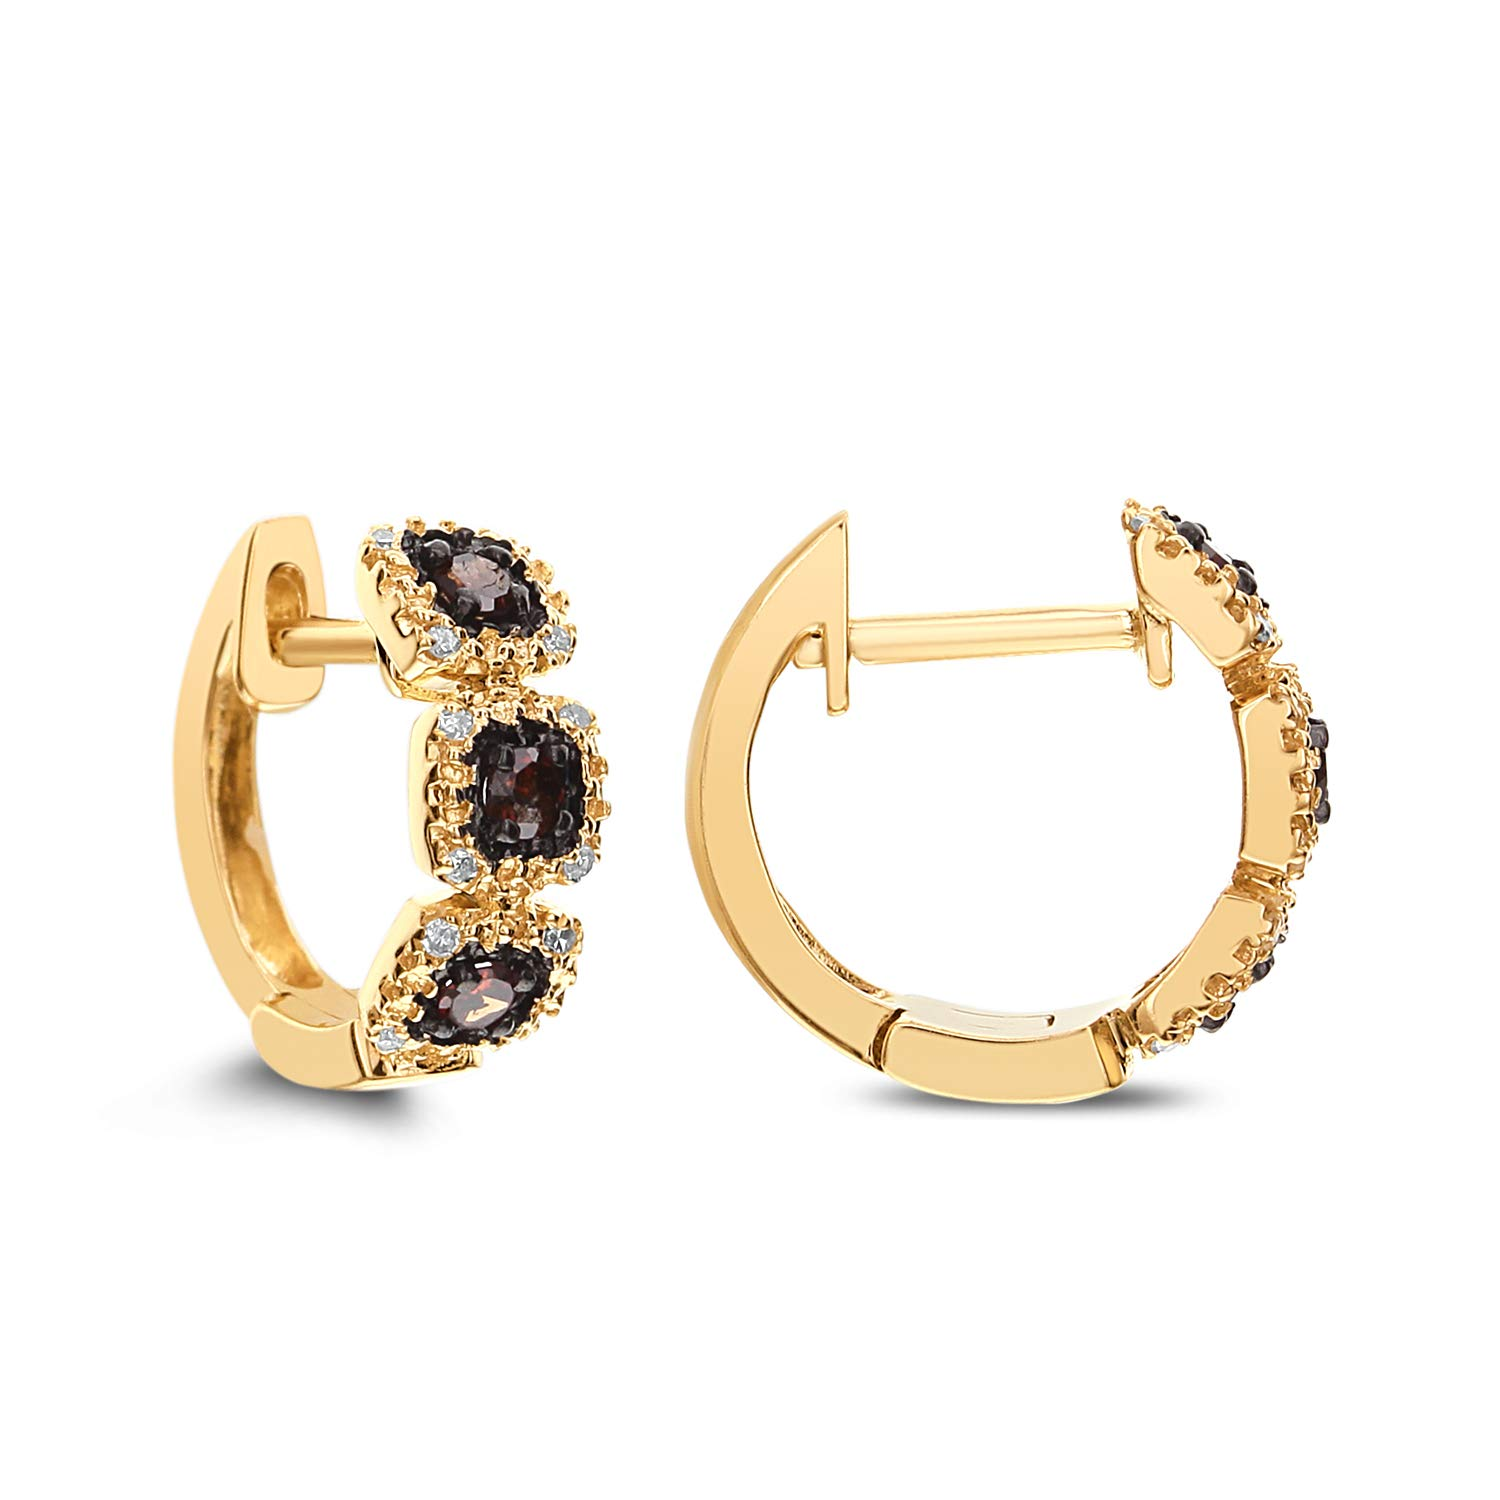 Diamond Couture 10K Yellow Gold Diamond Hoop Huggies Earring (0.10cttw Brown Diamonds and 0.05cttw White Diamonds I-J Color, I1-I2 Clarity), Gift for Her